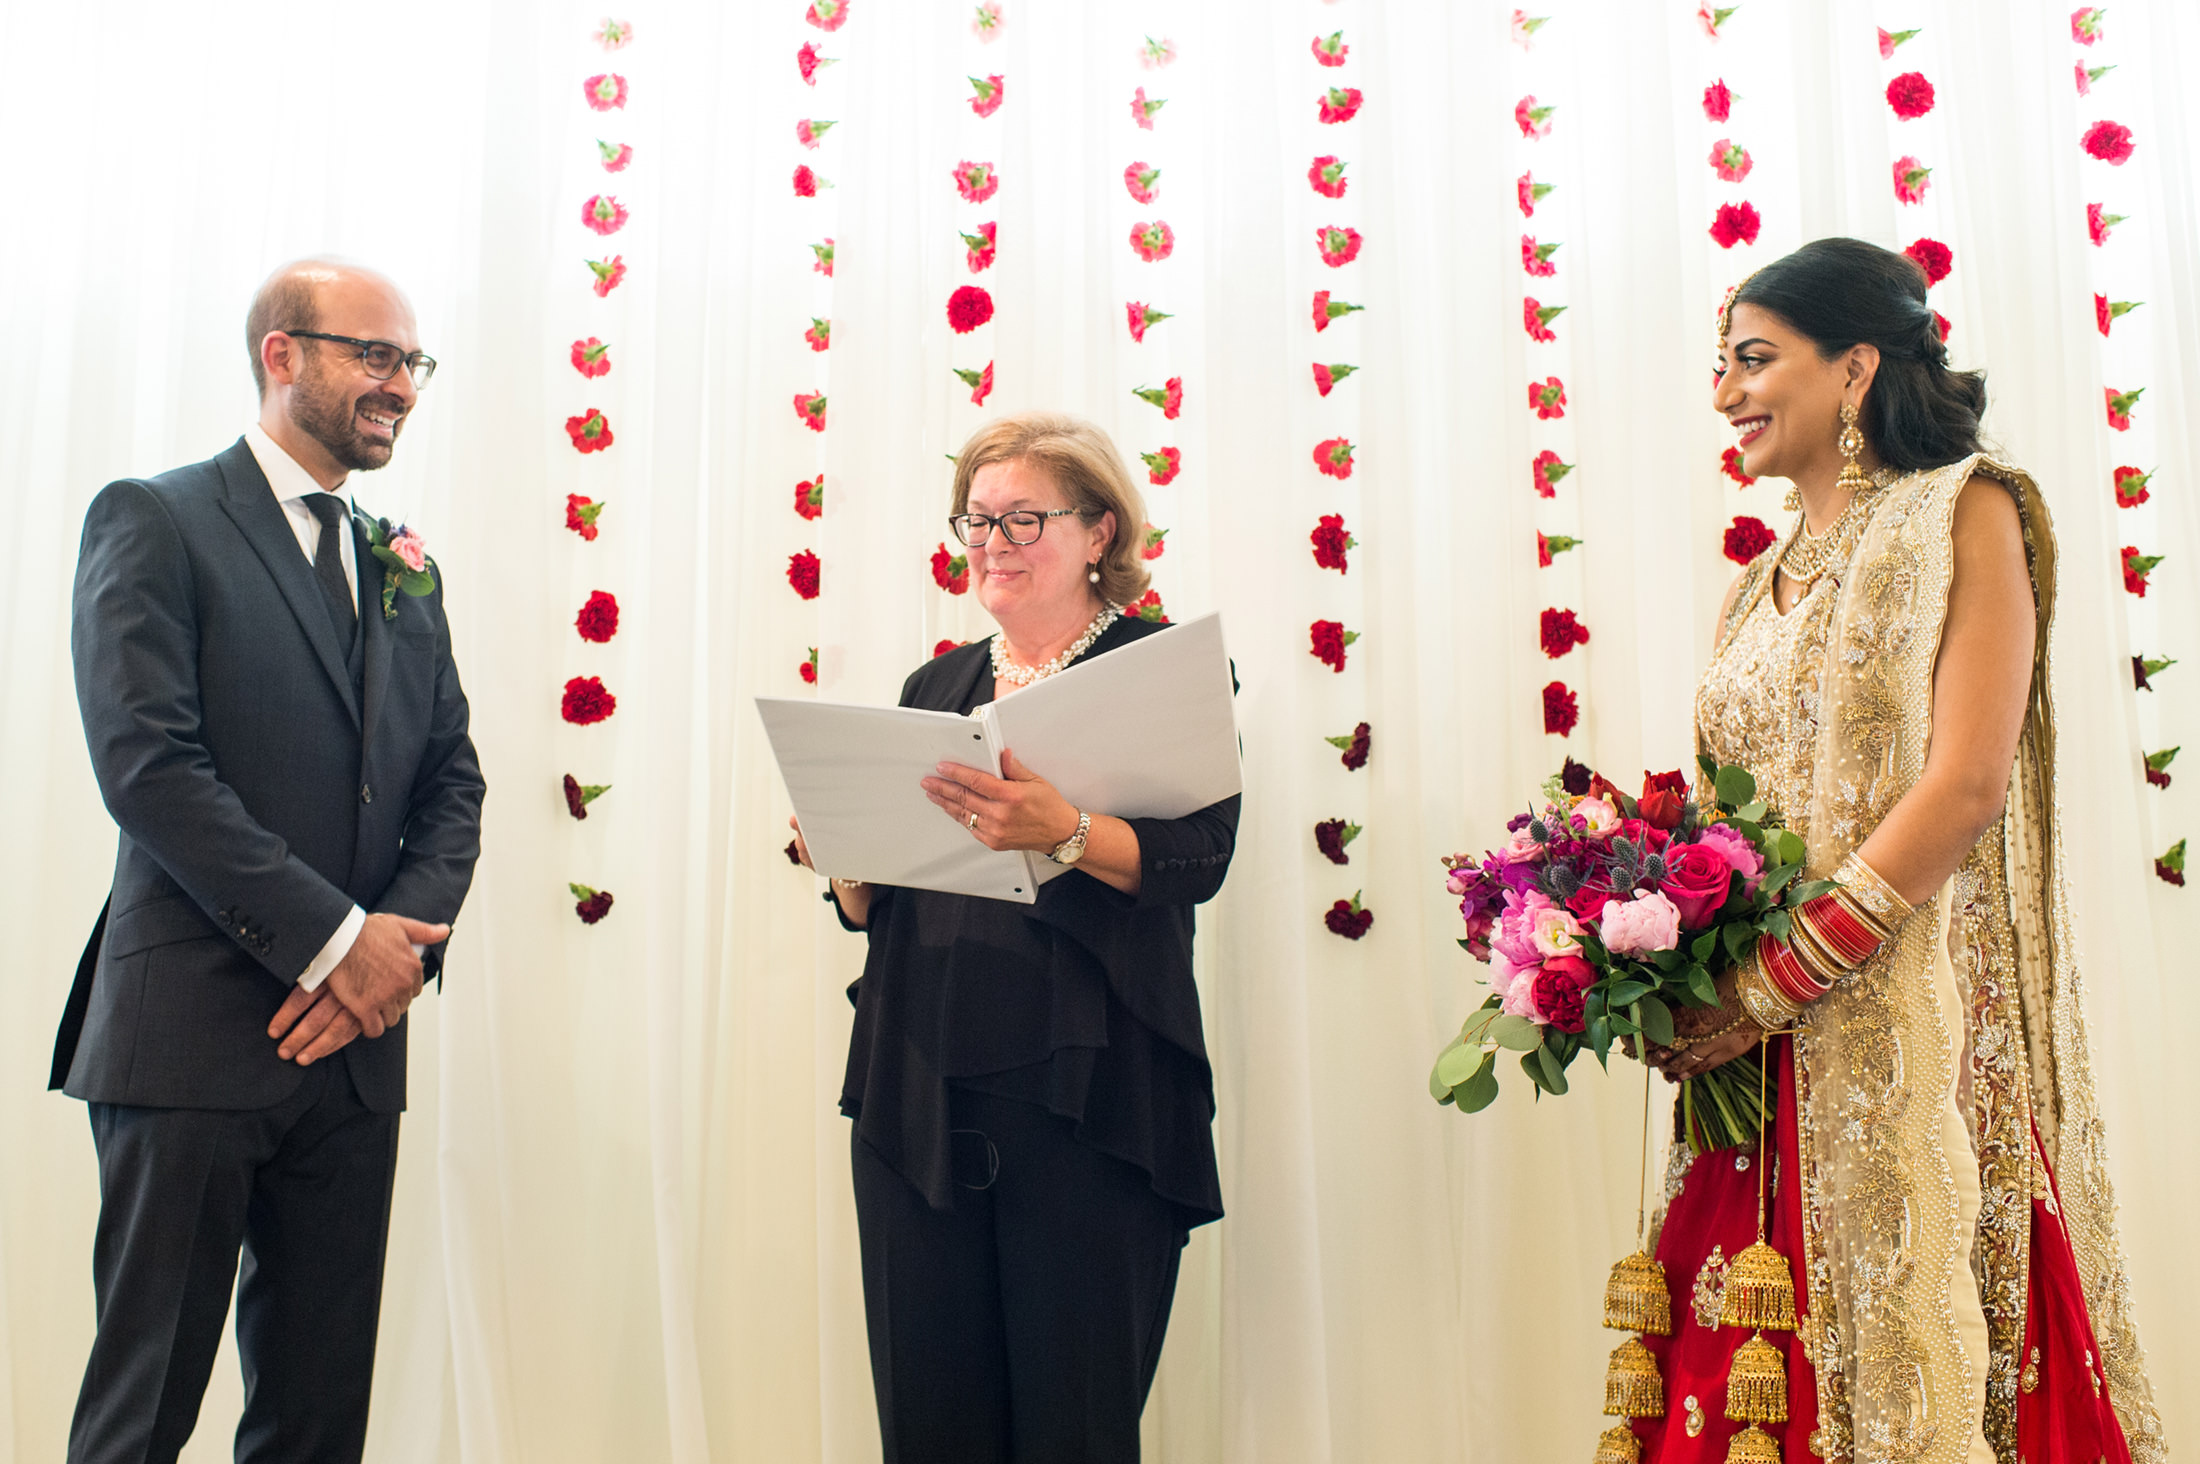 Edmonton_wedding_photographers_enjoy_center_wedding_Kiran_faisal_24.jpg